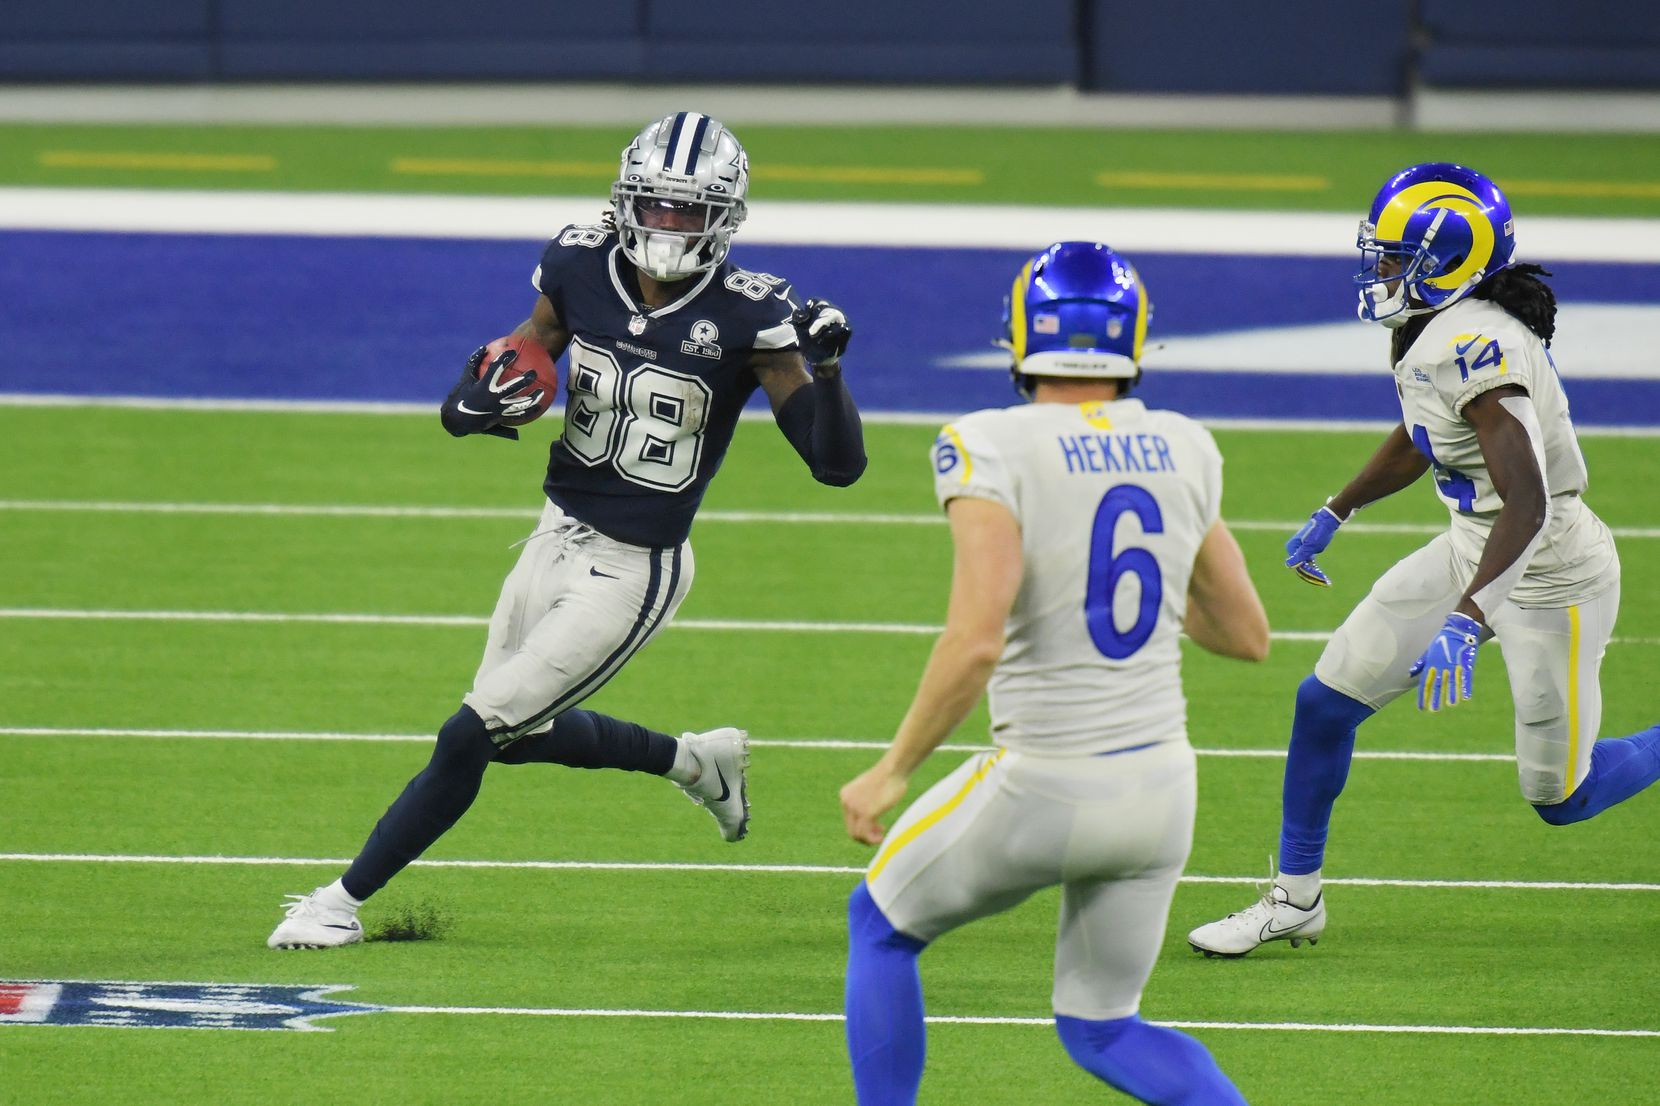 CeeDee Lamb #88 of the Dallas Cowboys returns a punt during the third quarter against the Los Angeles Rams at SoFi Stadium on September 13, 2020 in Inglewood, California.